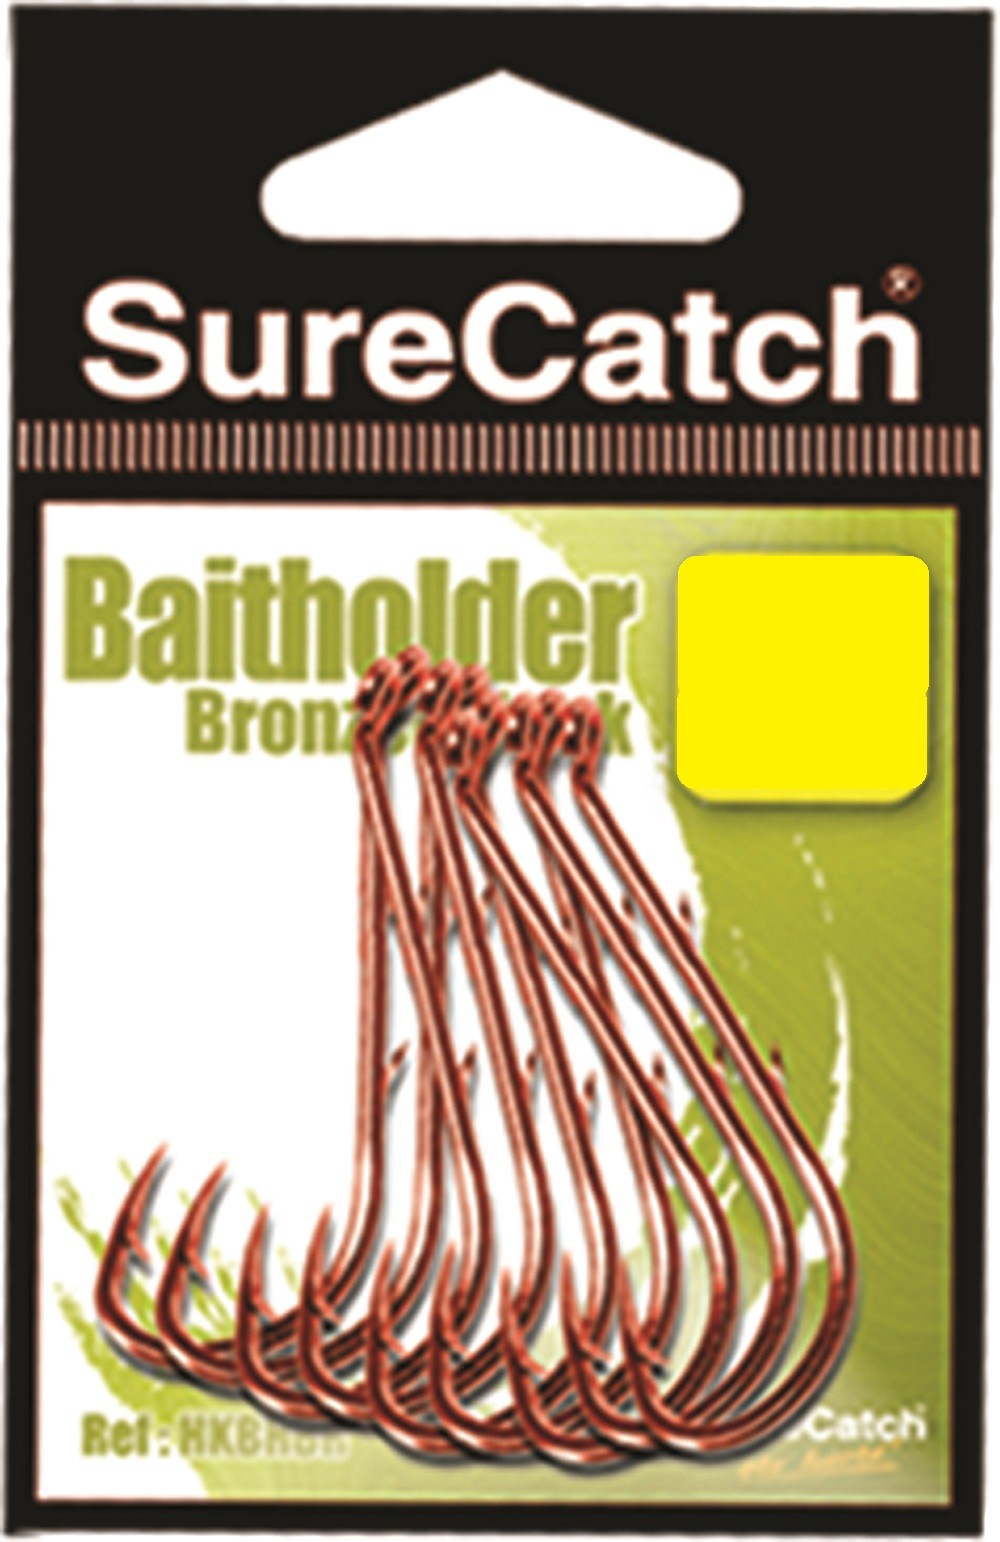 Sure Catch Bronze Baitholder Hook (6 per Pack) - Size 3/0